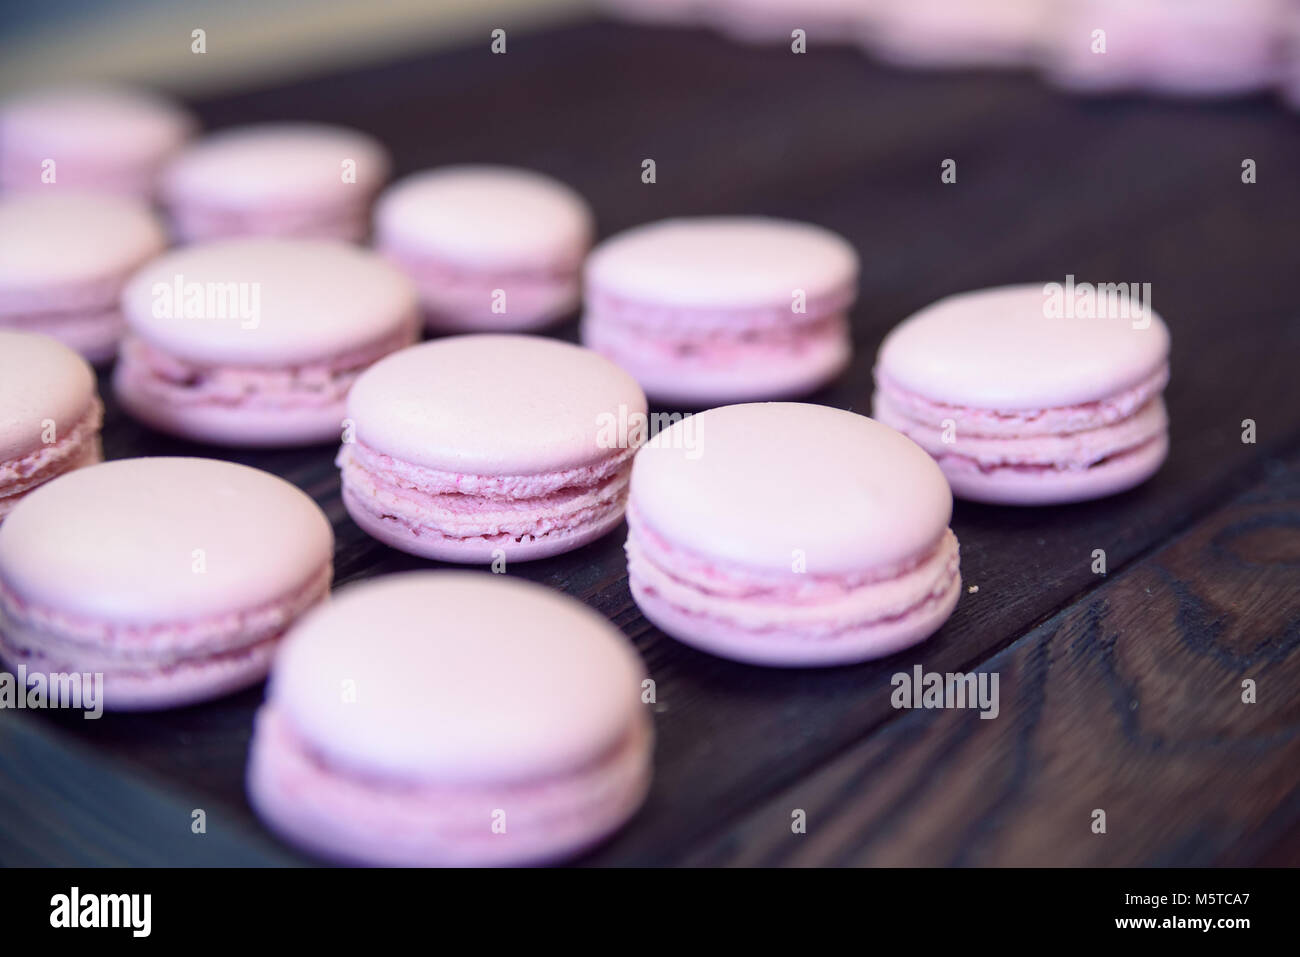 Pink macarons on wooden table - Stock Image